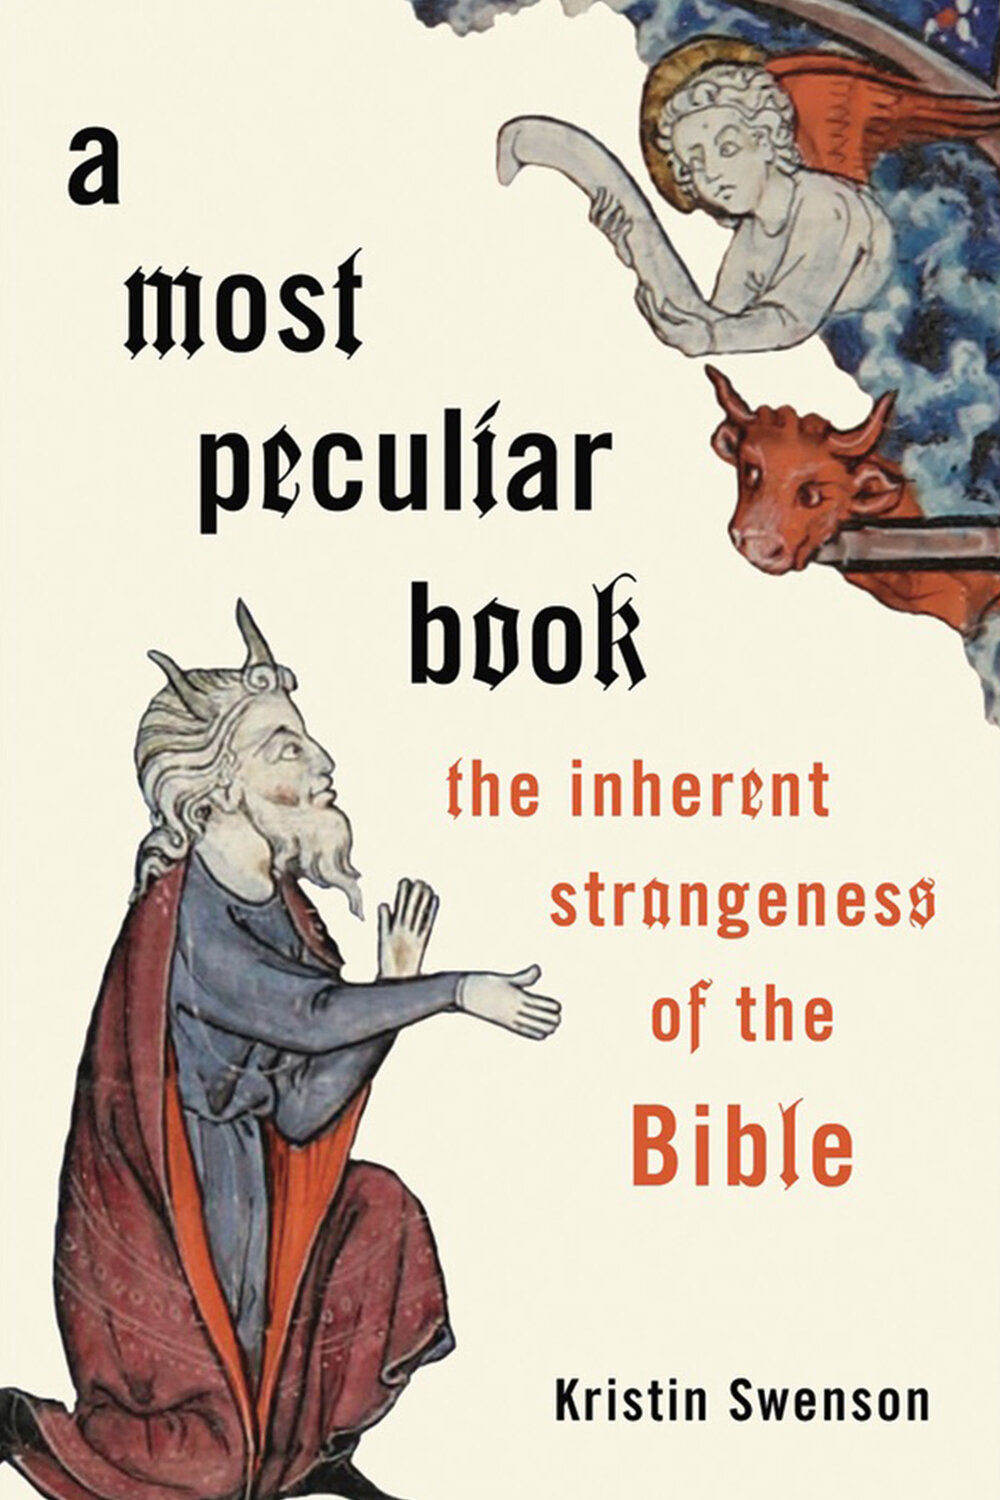 A Most Peculiar Book The Inherent Strangeness of the Bible by Kristin Swenson